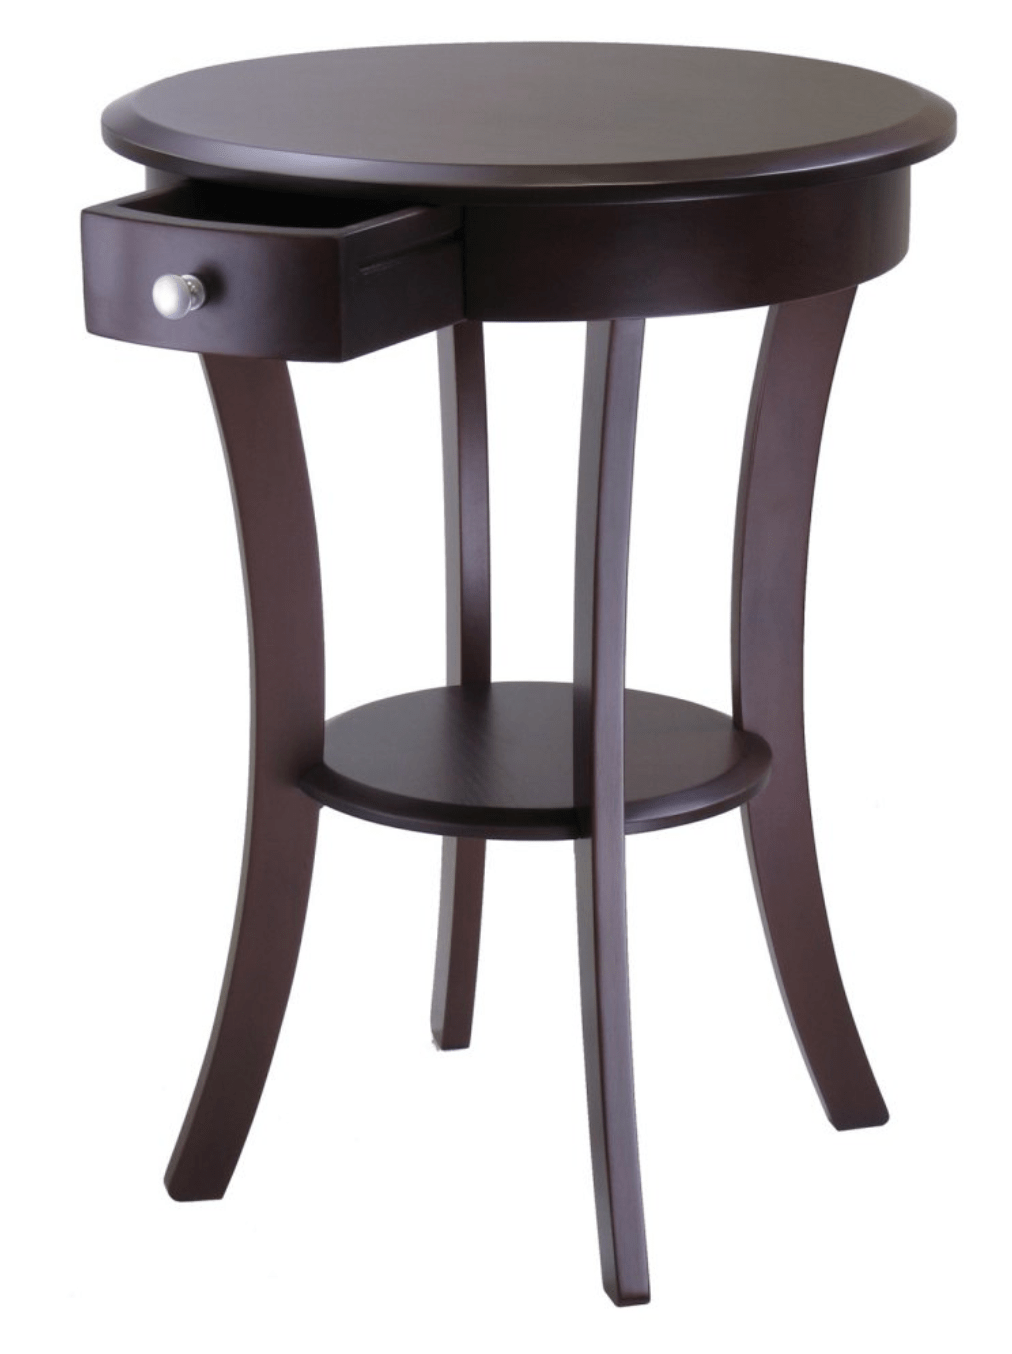 lovely small accent table for round wood min square contemporary the bedroom target fretwork side with shelves and chairs inch sofa console metal marble bar free topper patterns